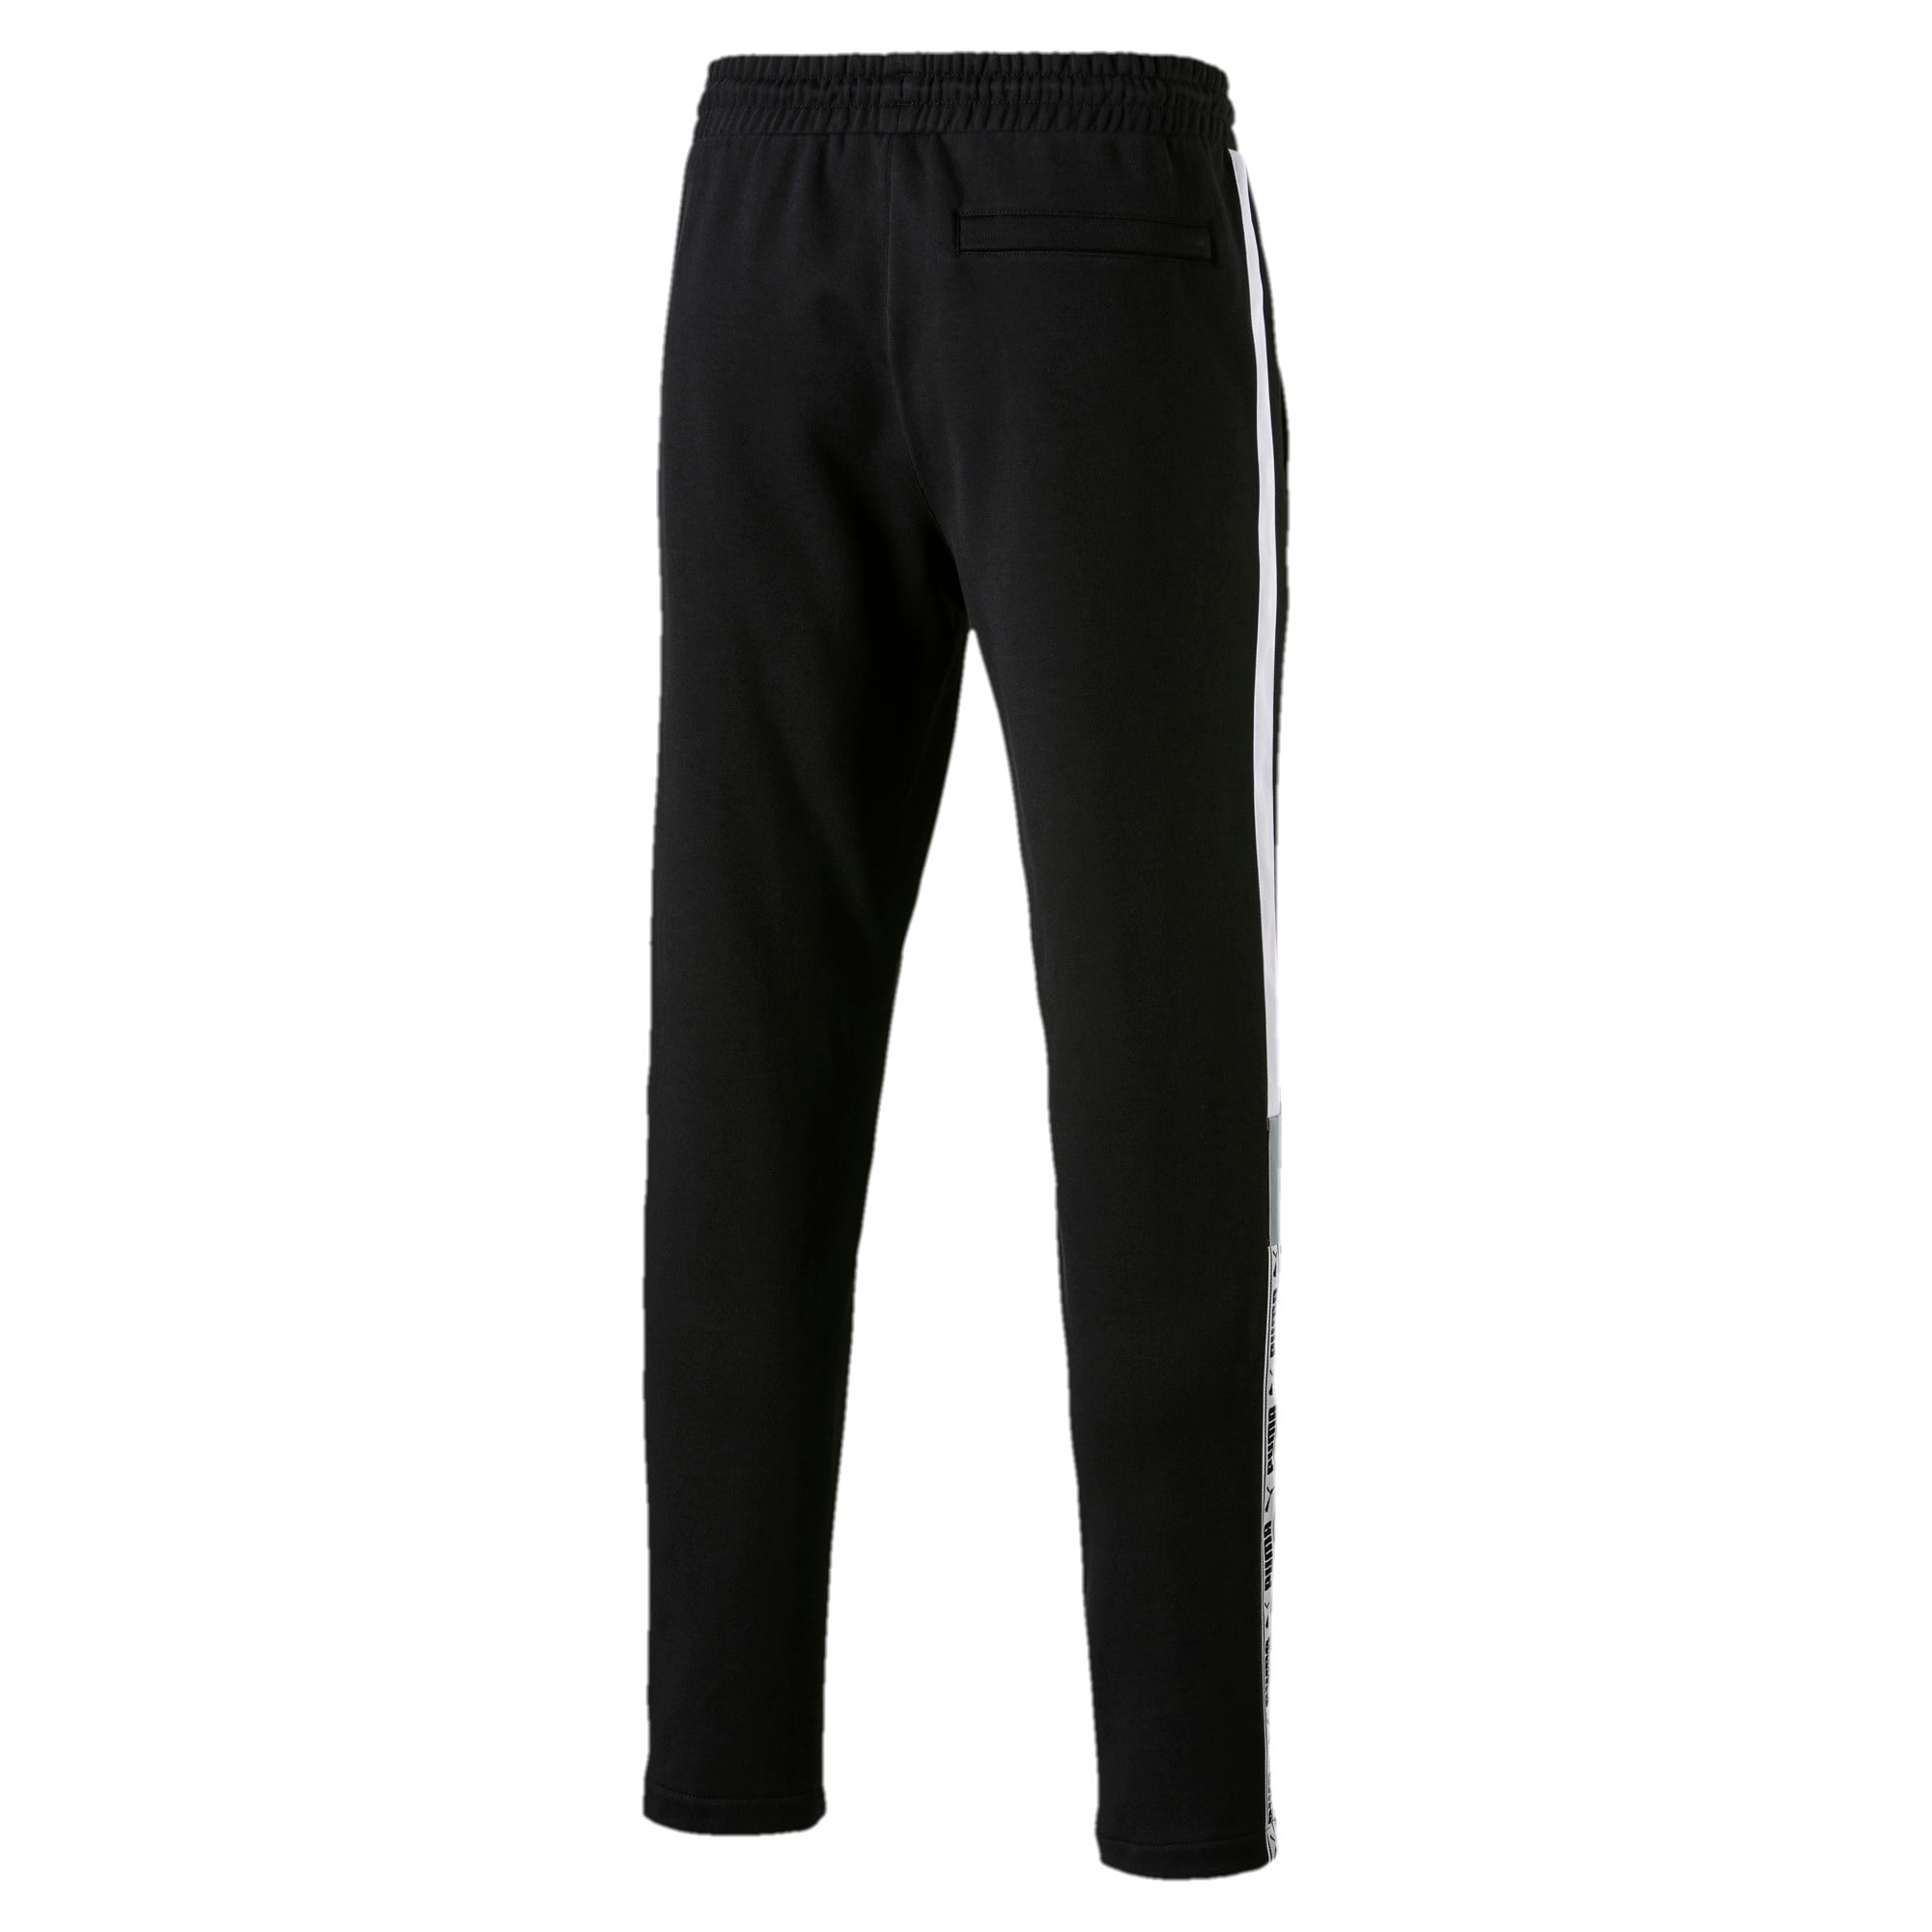 Thumbnail 2 of PUMA XTG Men's Sweatpants, Cotton Black-Puma white, medium